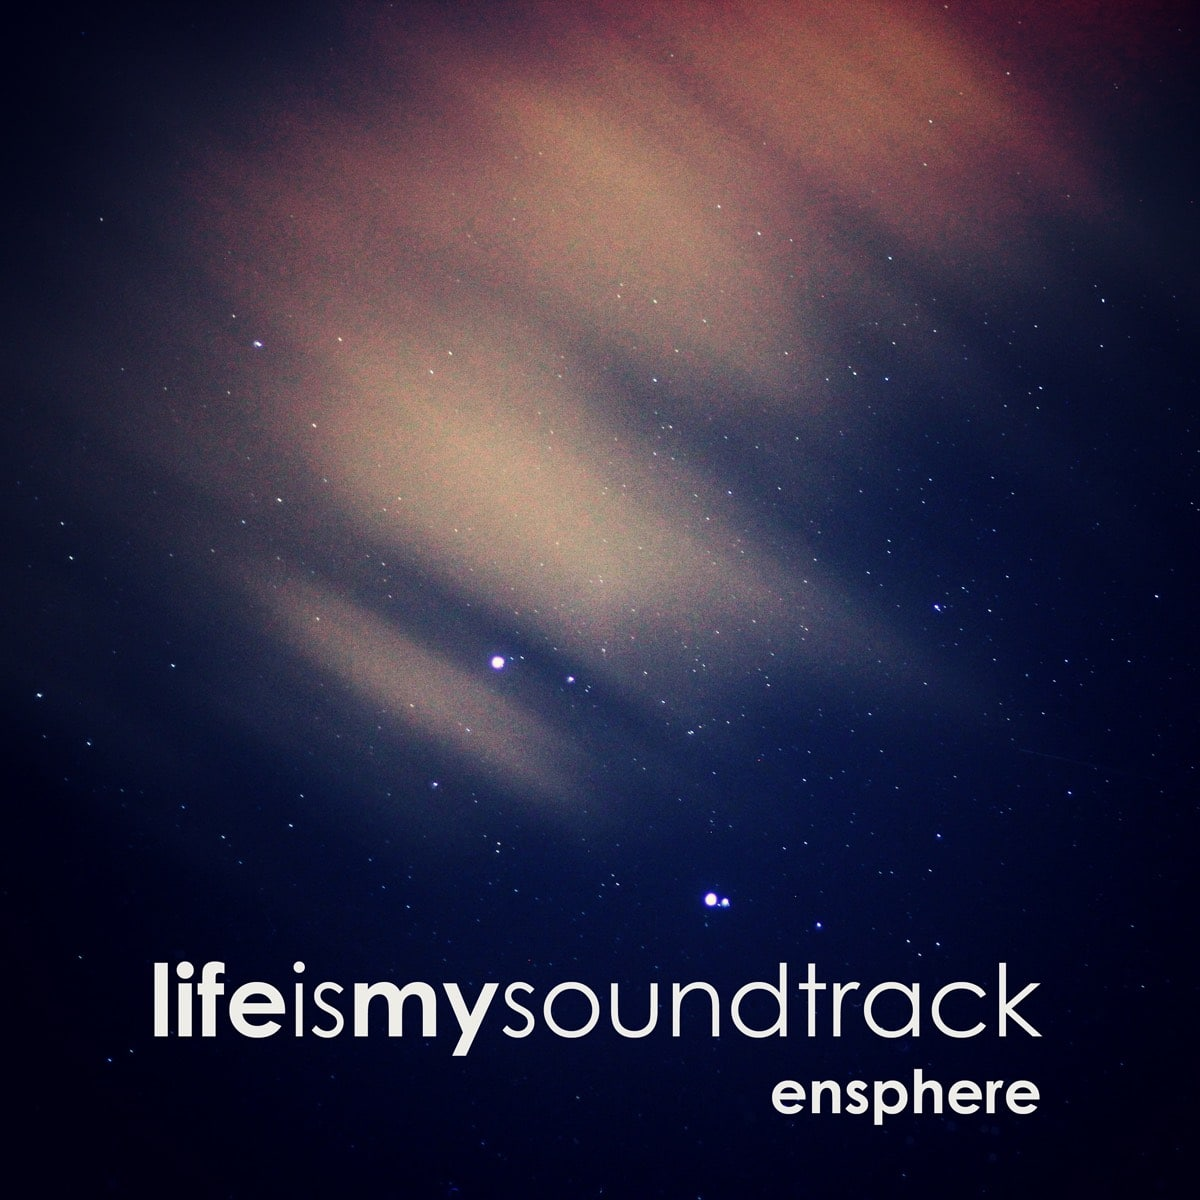 The album Ensphere by Life Is My Soundtrack - Atmospheric, synthesized textures and drum beats combined with a hint of mystery